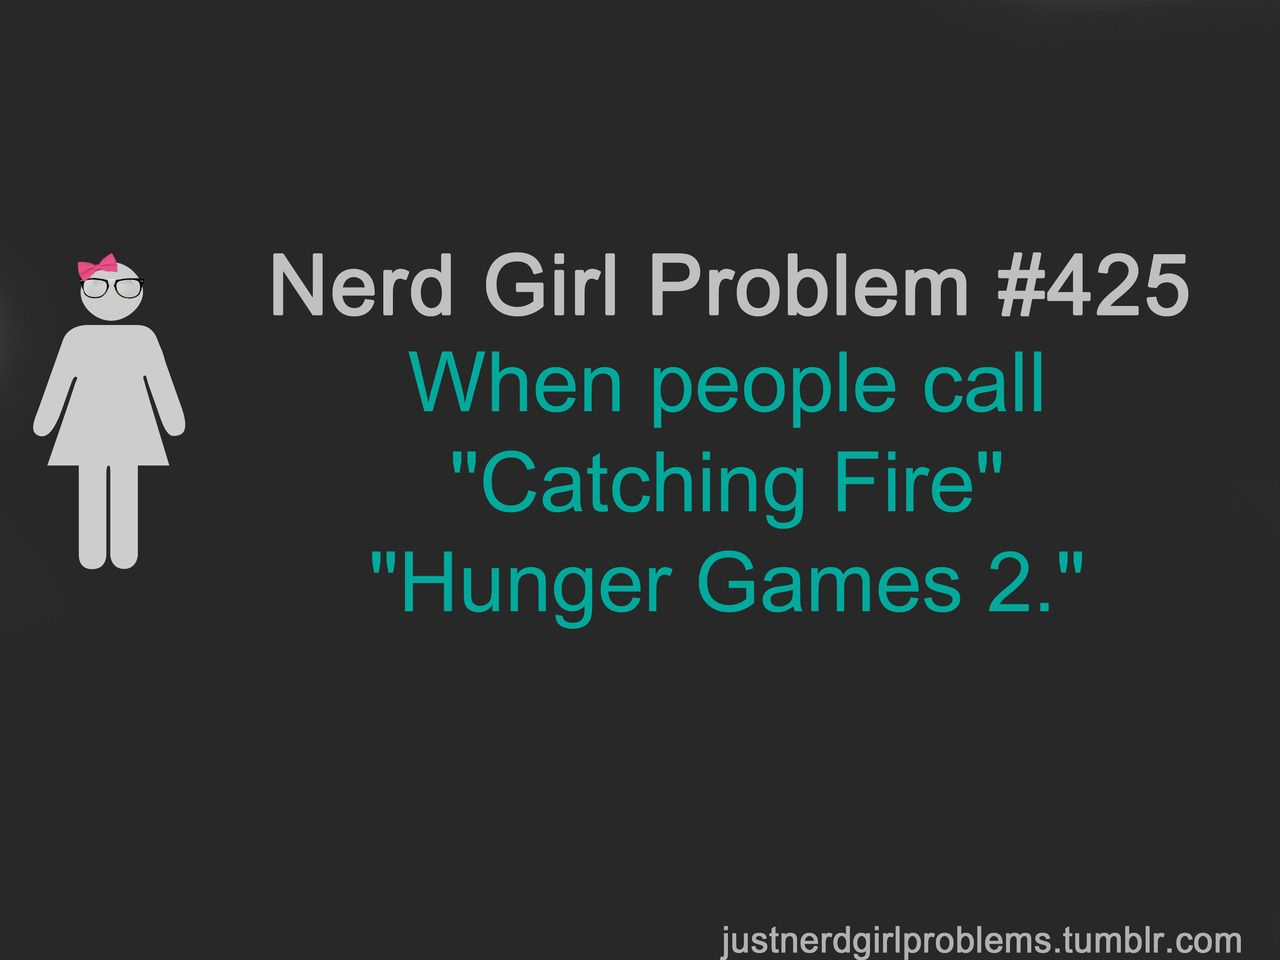 then again, if people aren't following the Hunger Games then it kind of makes sense, still kind of sad.